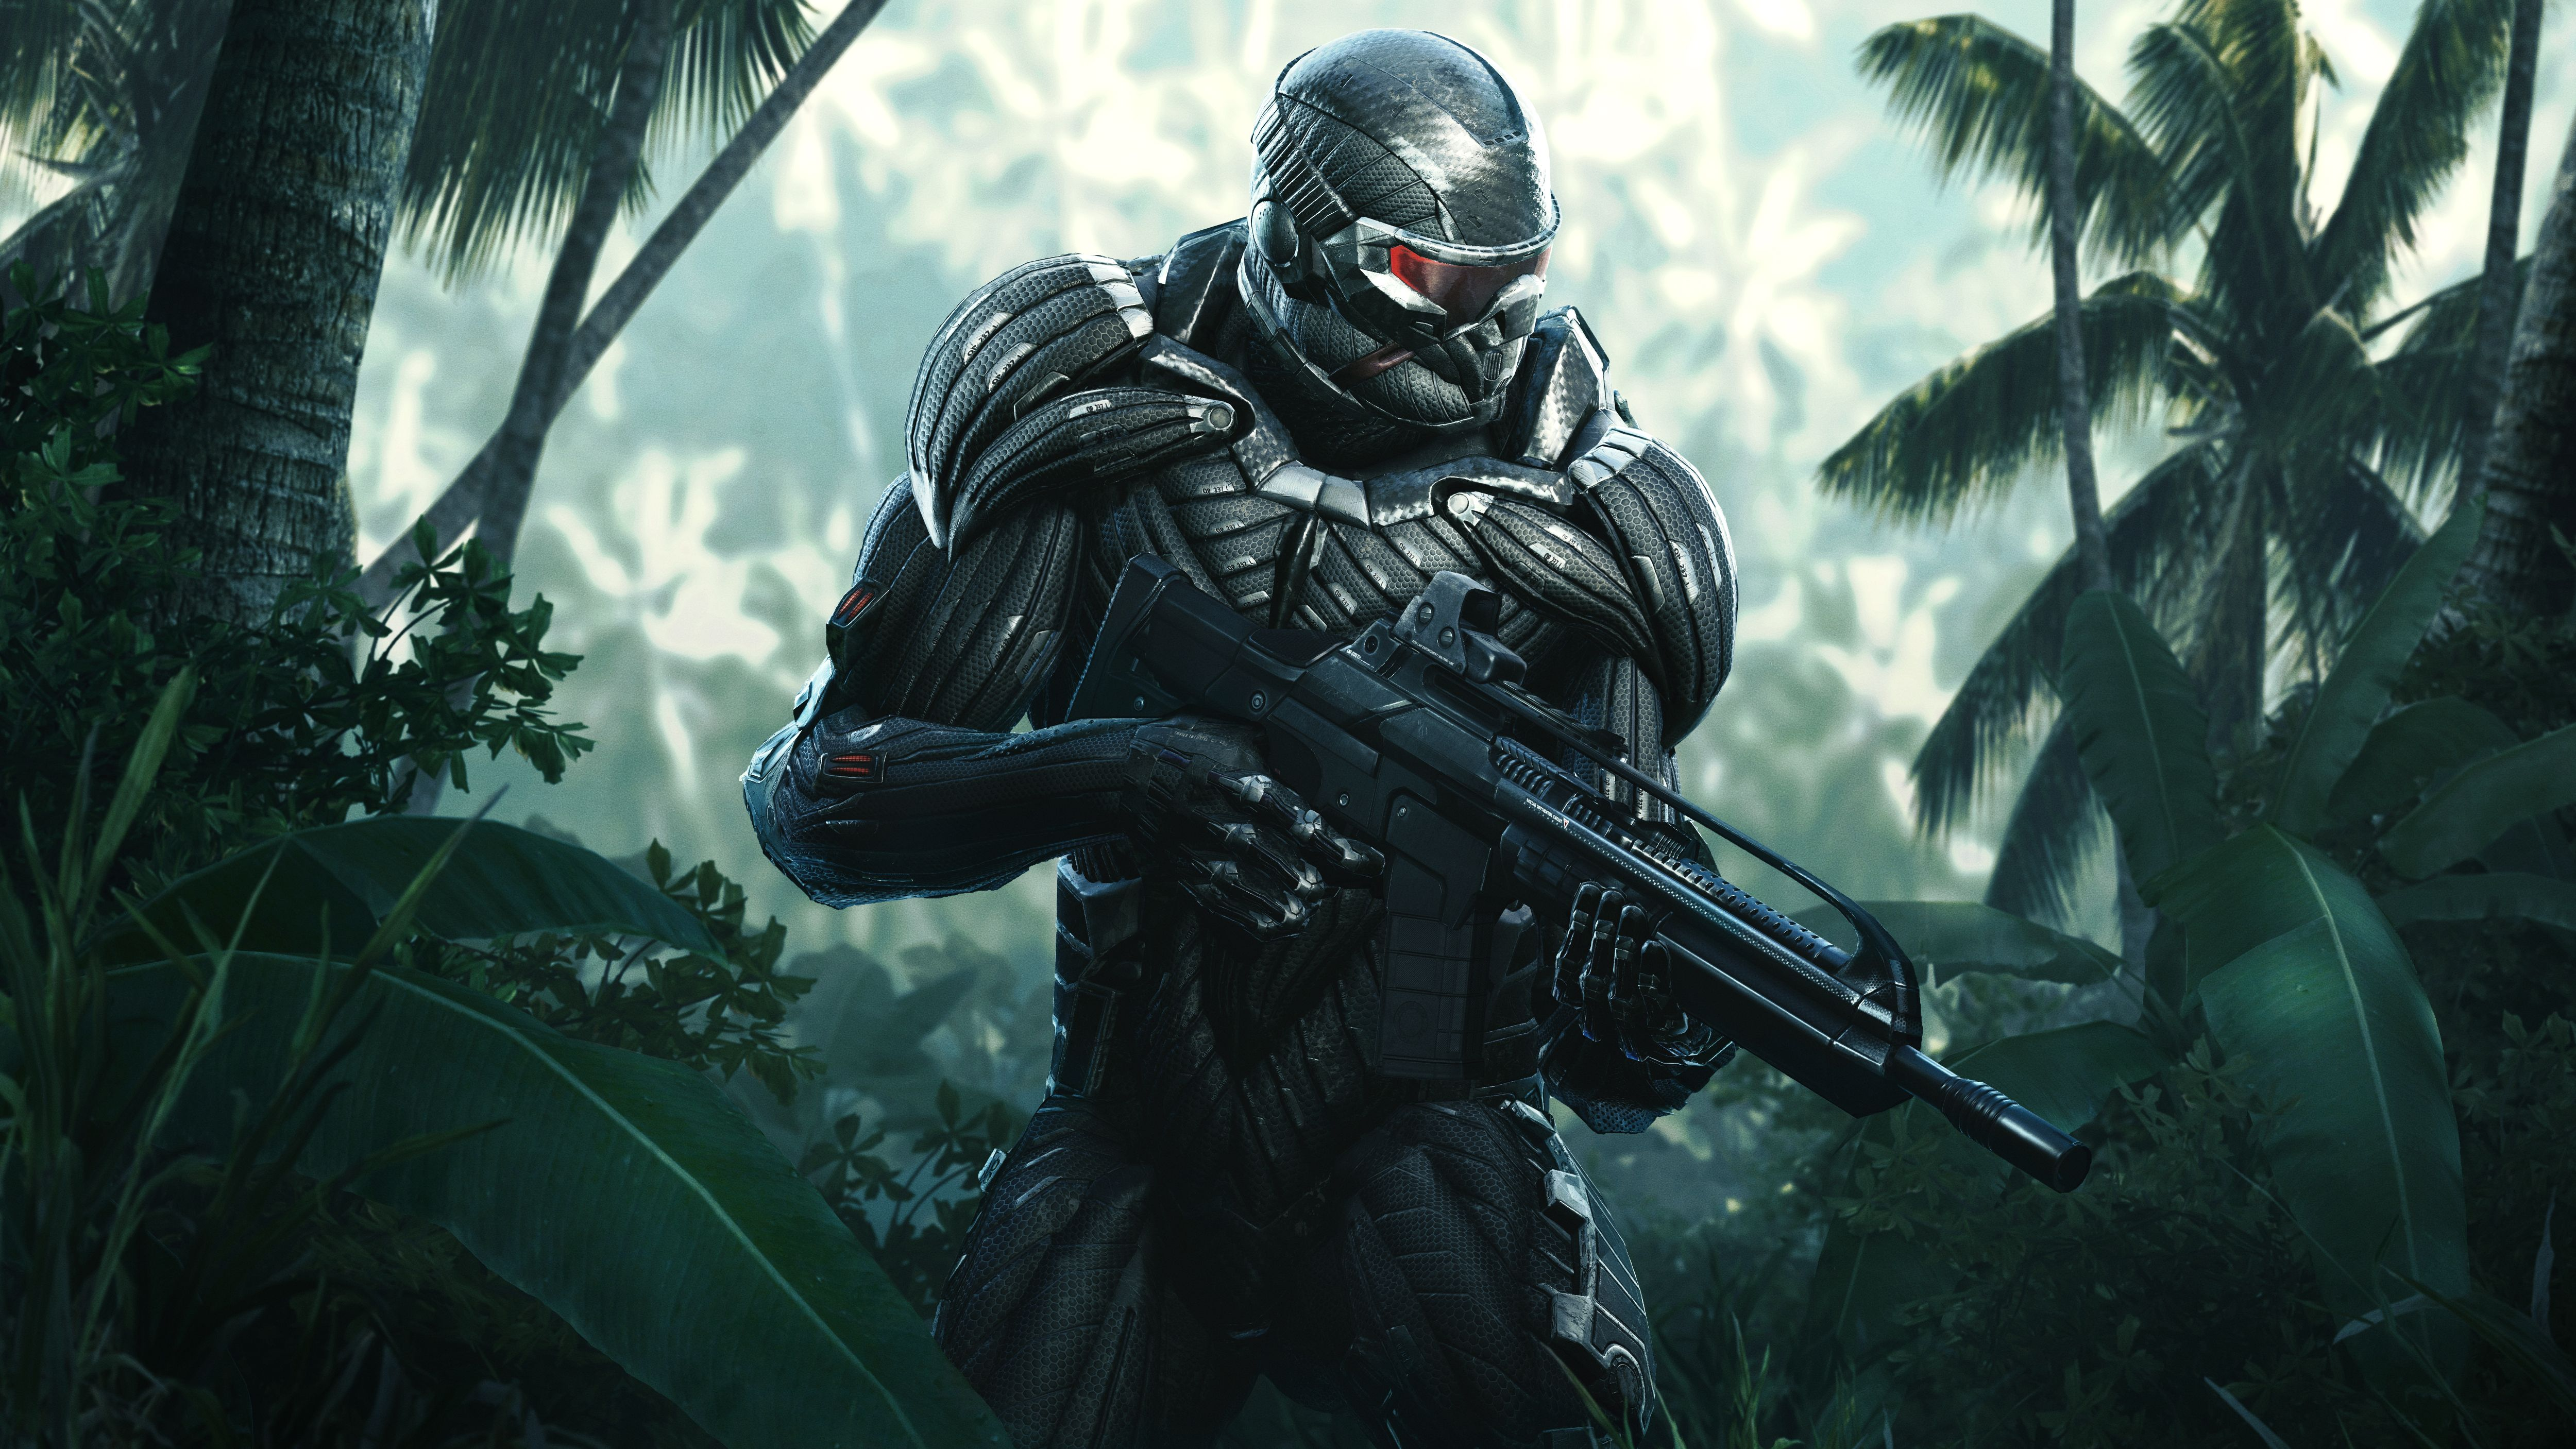 Crysis Remastered Wallpapers - Wallpaper Cave